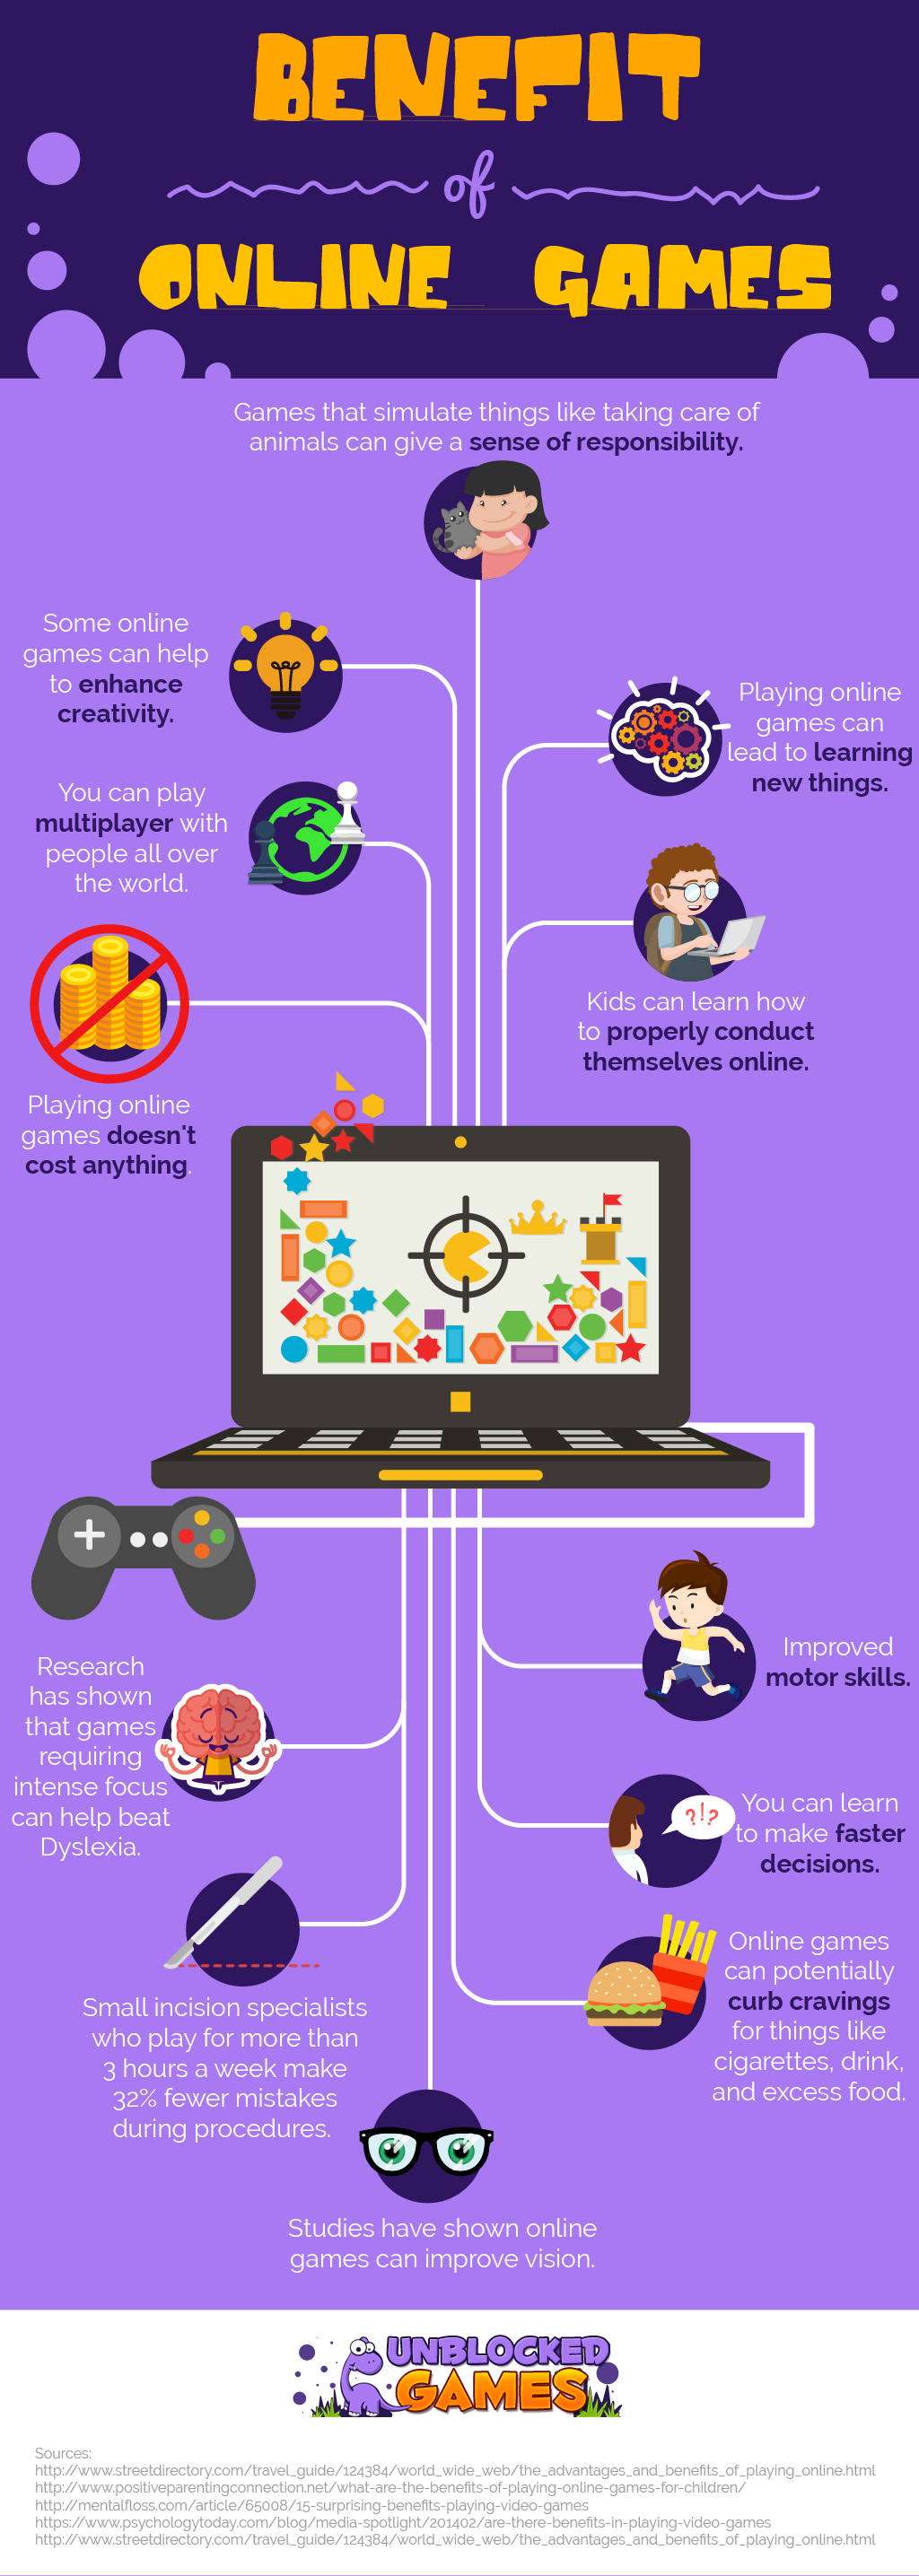 [Infographic] Benefit of Online Games Unblocked Games